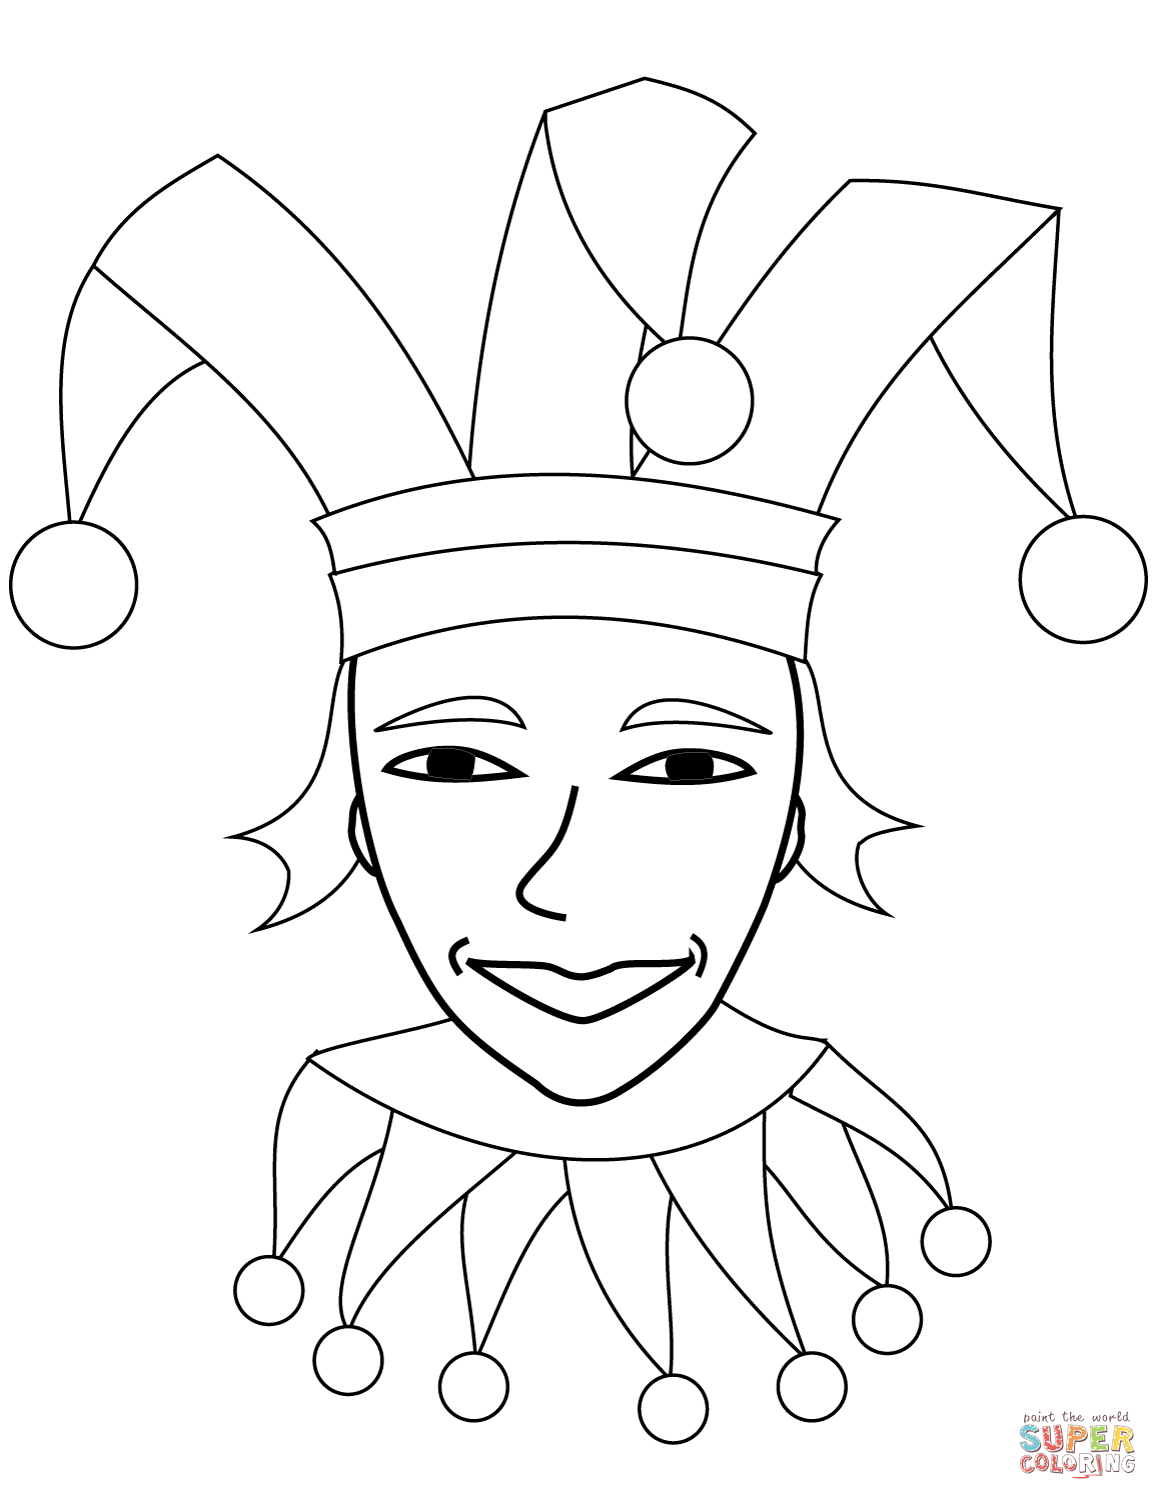 Jester Face Coloring Page